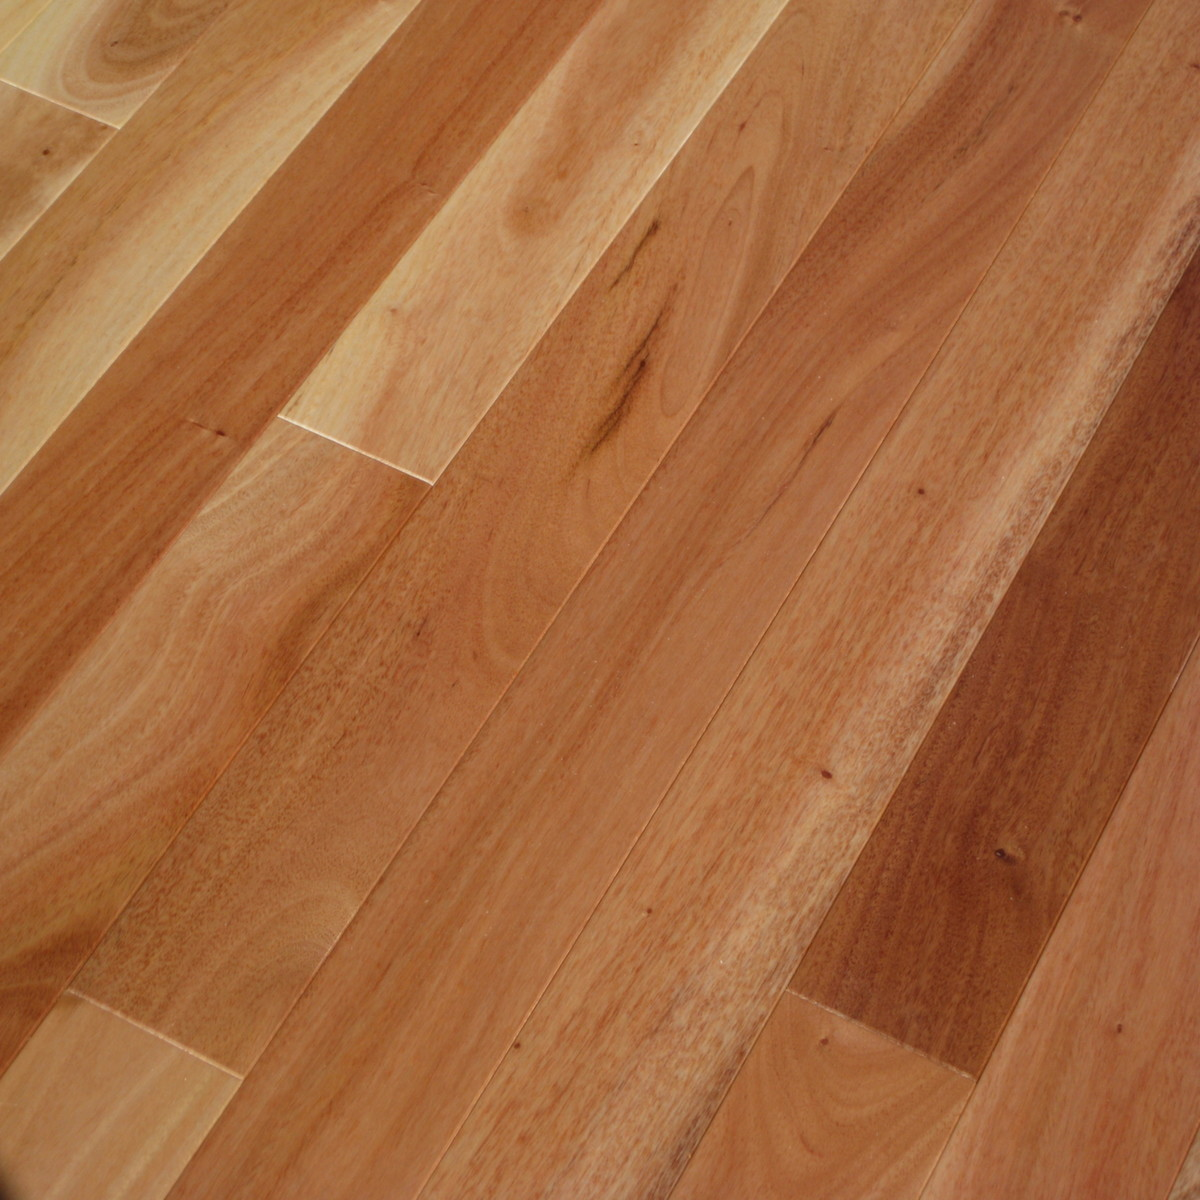 Amendoim hardwood flooring brazilian oak flooring for Flooring floor